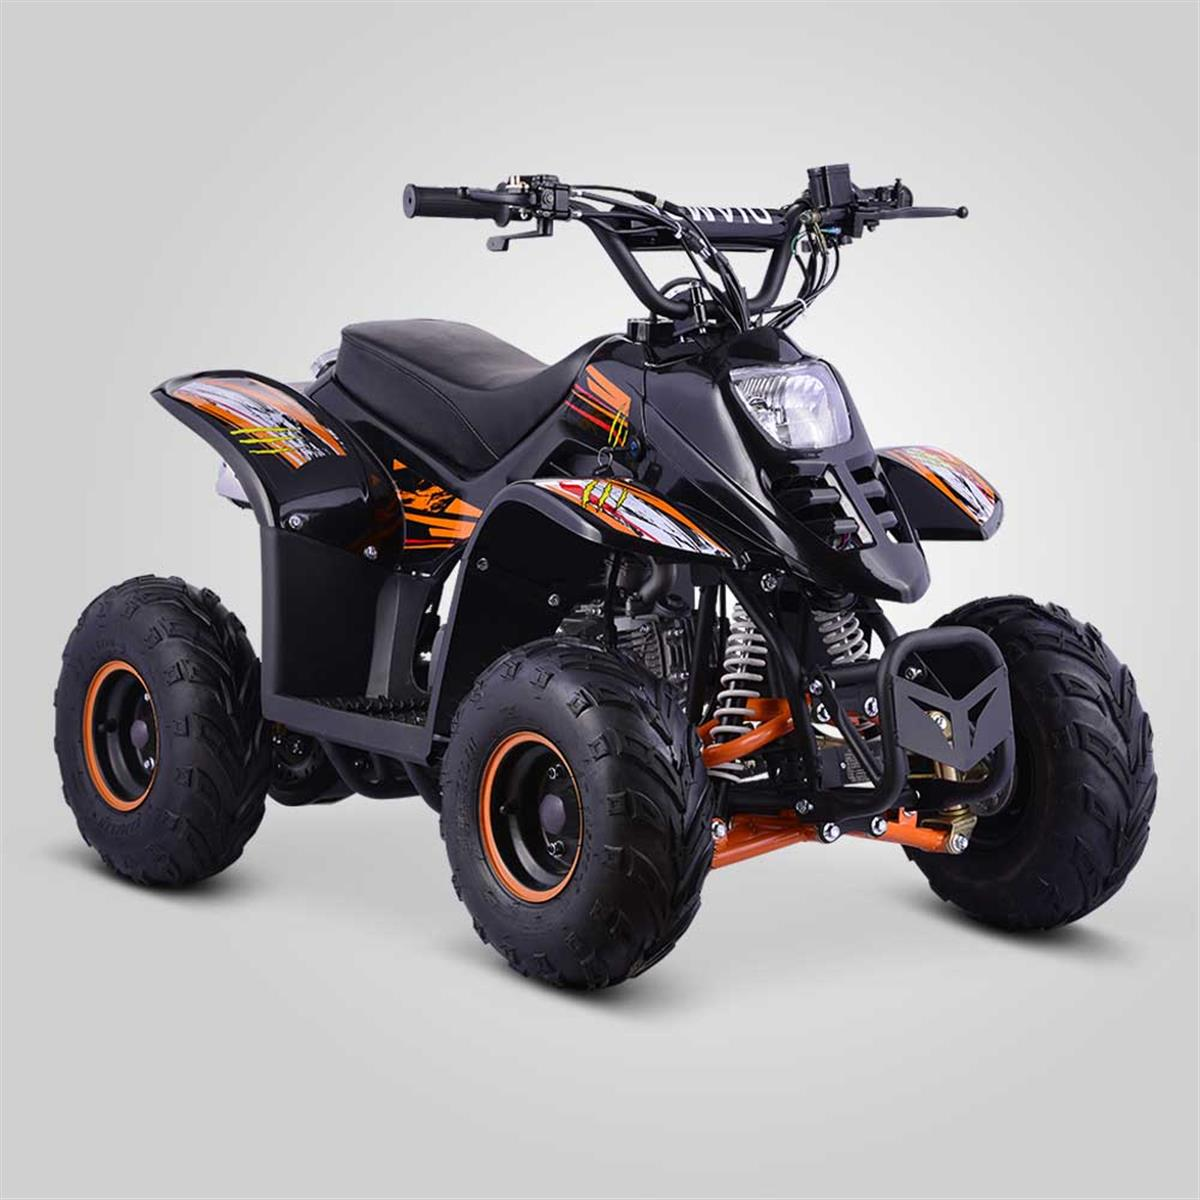 quad enfant diamon 110cc orange smallmx dirt bike pit bike quads minimoto. Black Bedroom Furniture Sets. Home Design Ideas